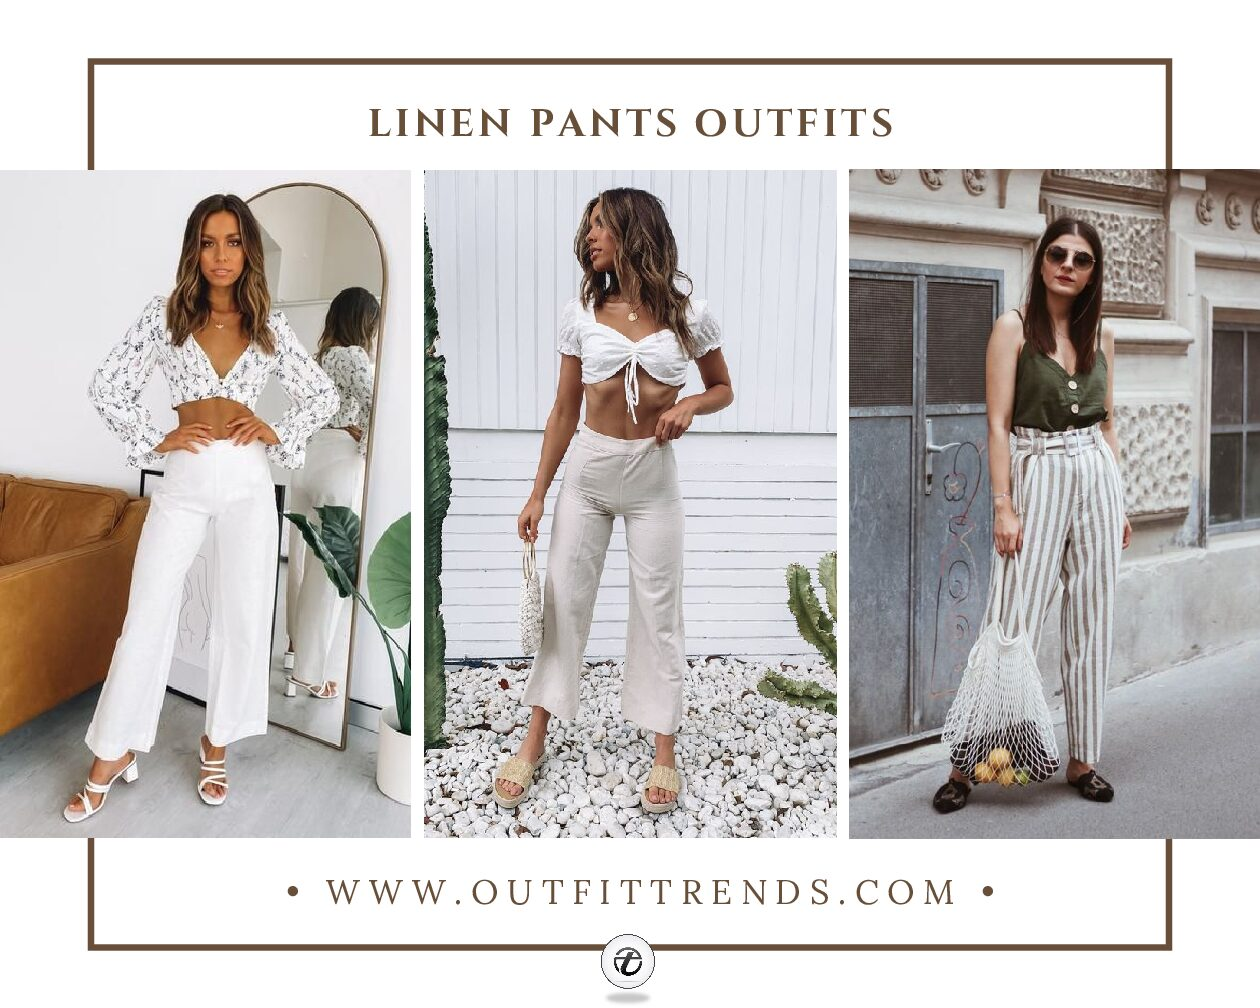 Linen Pants Outfits – 20 Ideas on How To Wear Linen Pants